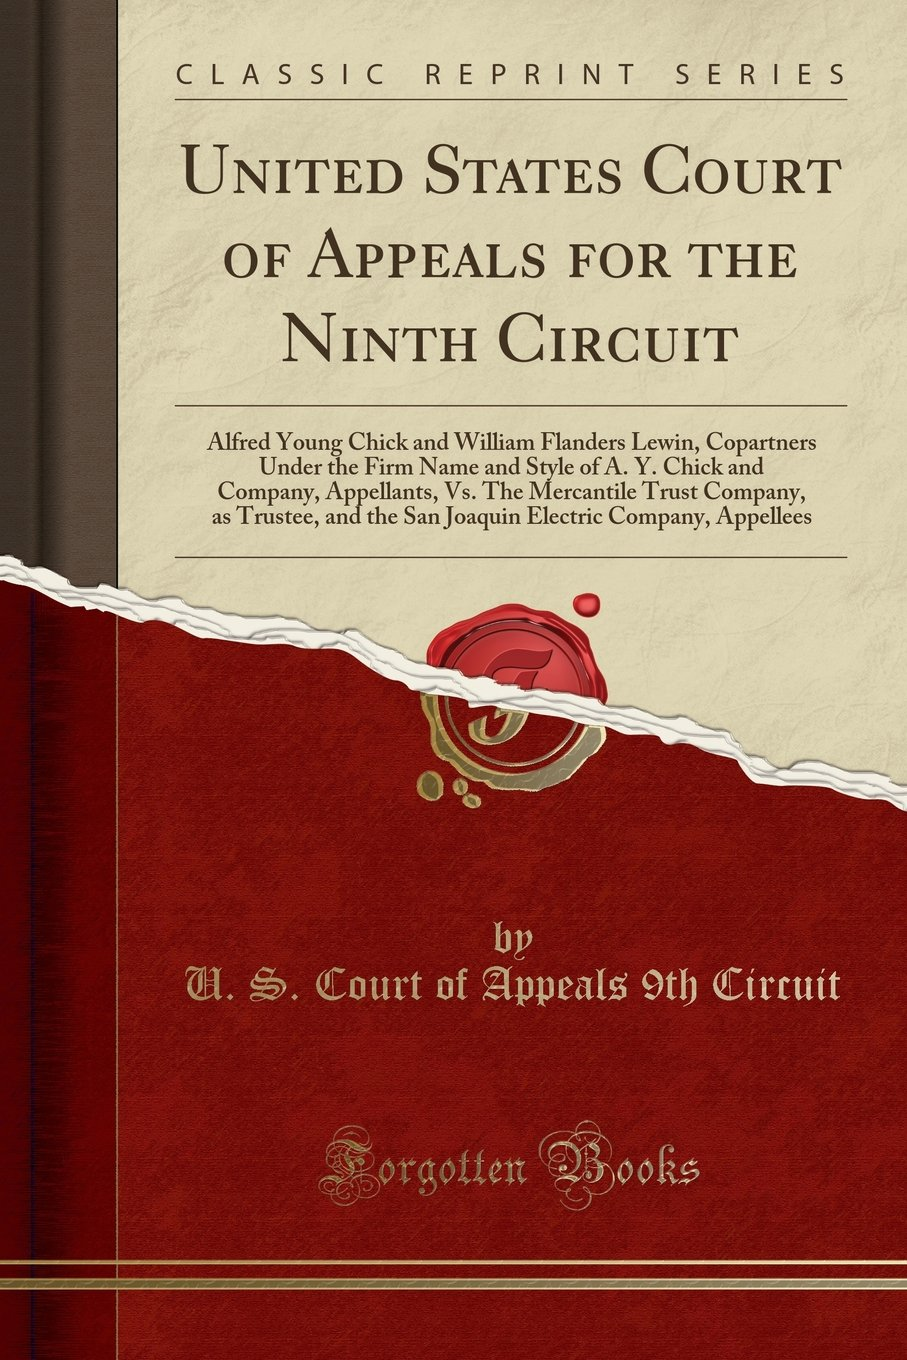 Download United States Court of Appeals for the Ninth Circuit: Alfred Young Chick and William Flanders Lewin, Copartners Under the Firm Name and Style of A. Y. ... as Trustee, and the San Joaquin Electri pdf epub